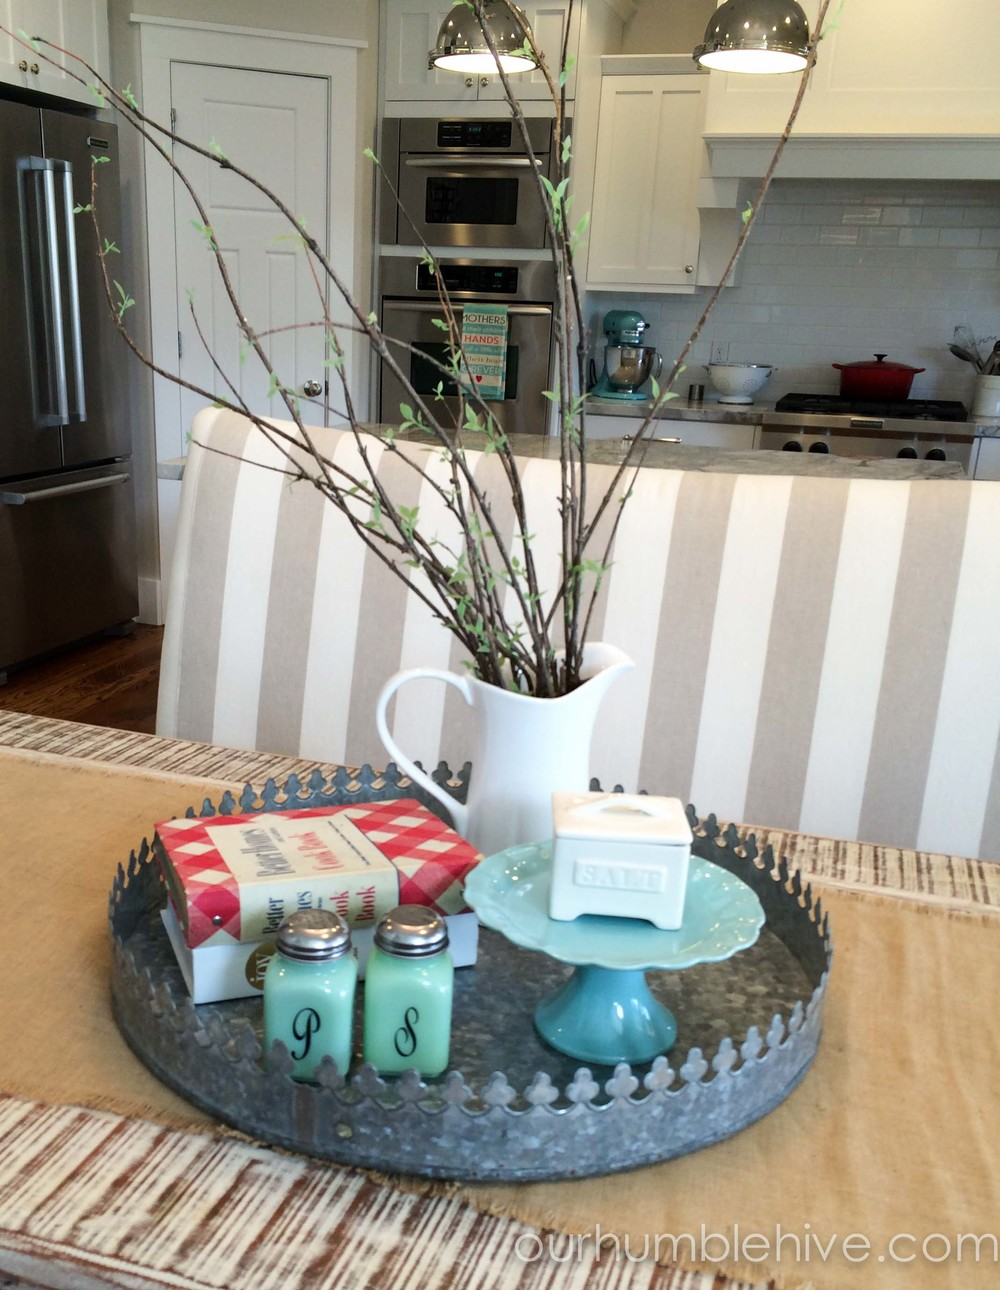 Seasonal decor updates spring kitchen our humble hive for Everyday kitchen table setting ideas